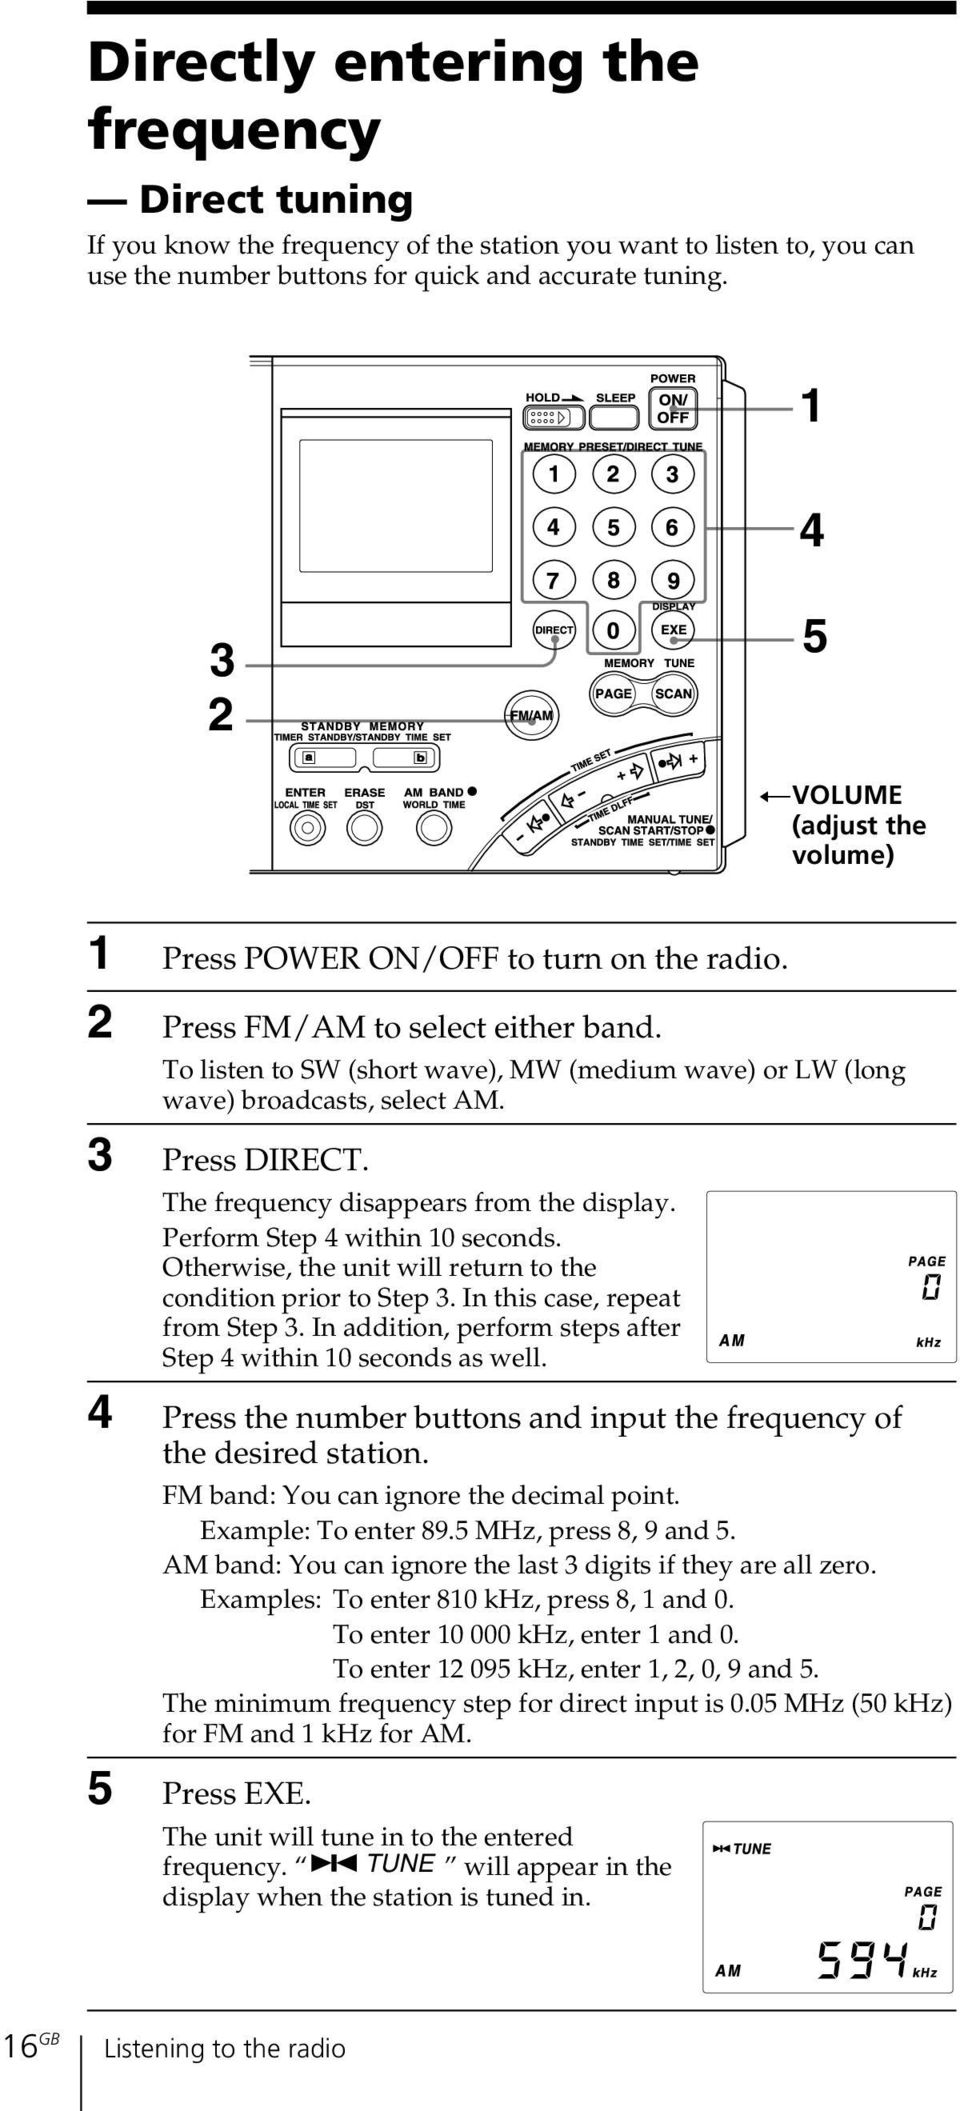 To listen to SW (short wave), MW (medium wave) or LW (long wave) broadcasts, select AM. 3 Press DIRECT. The frequency disappears from the display. Perform Step 4 within 10 seconds.